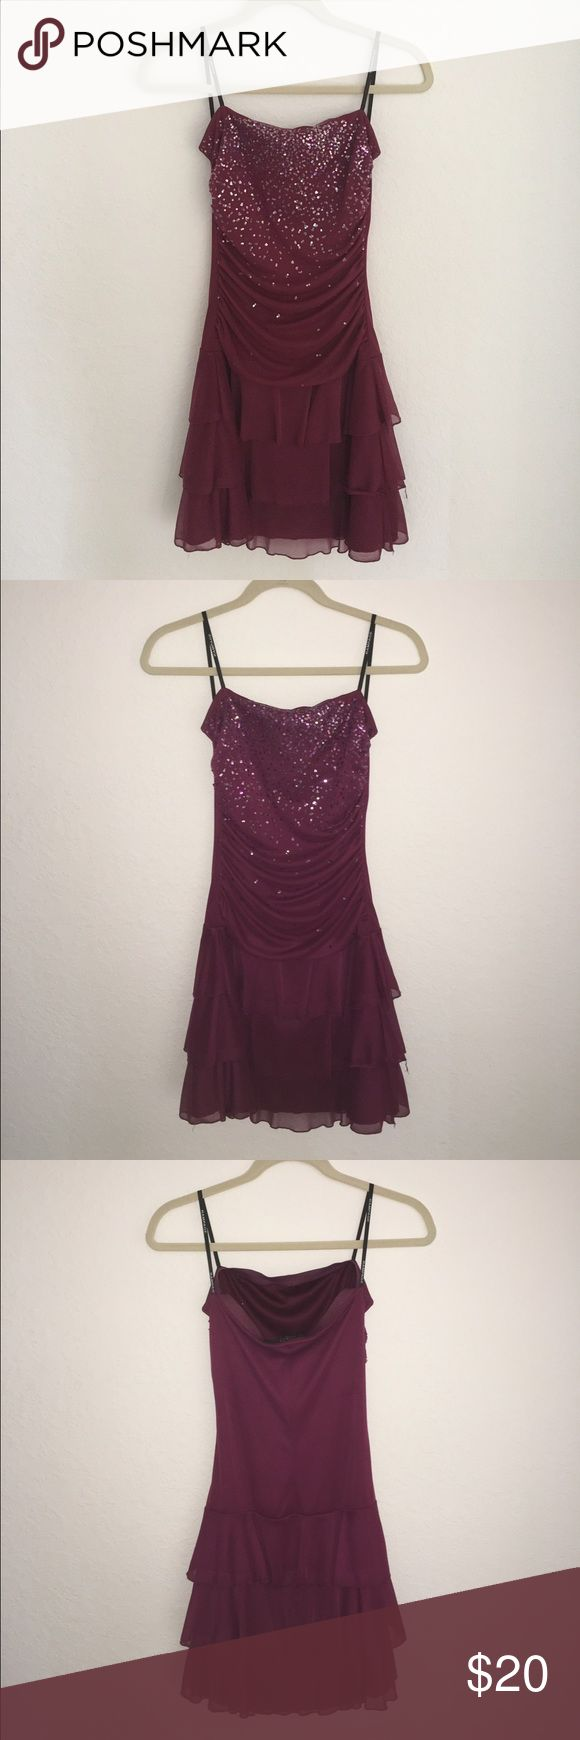 RAMPAGE strapless dress Strapless Rampage dress with sewn on sequence on top. Beautiful embellishments on this plum colored dress and only worn once! Rampage Dresses Strapless